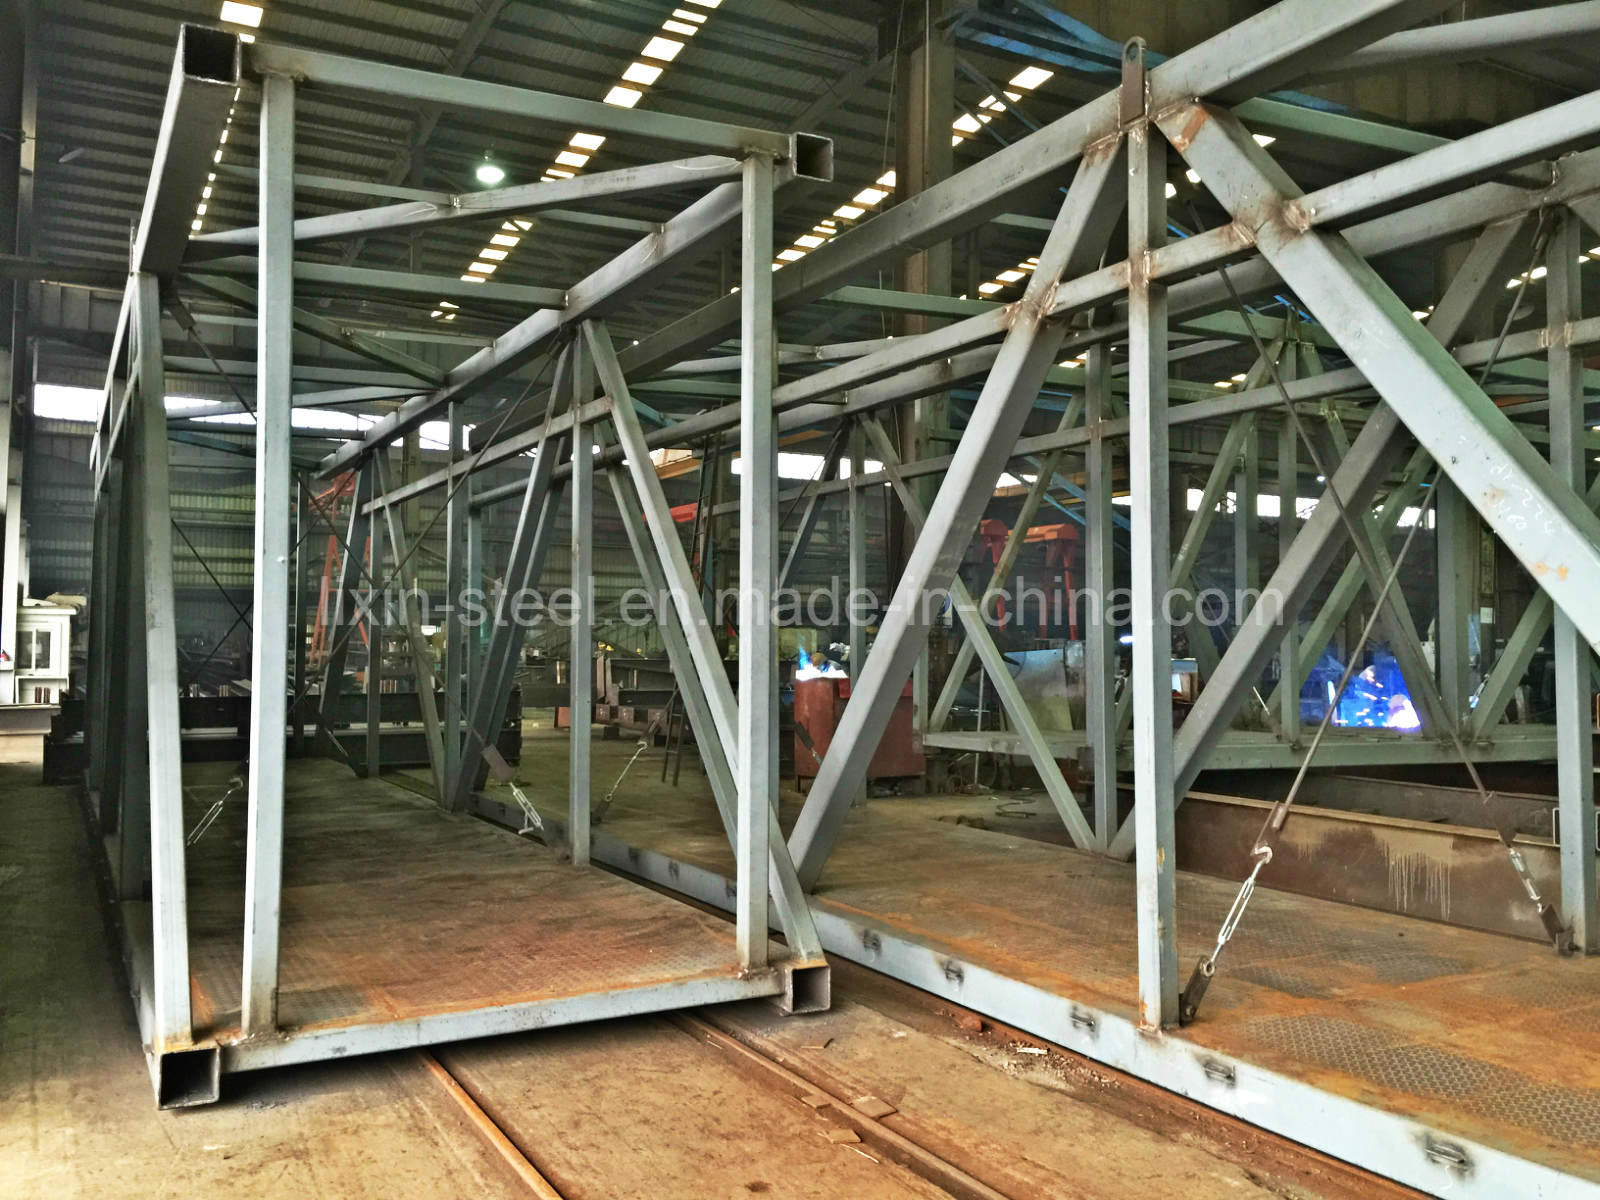 China Low Price Steel Fabrication Supplier for Metal Frame